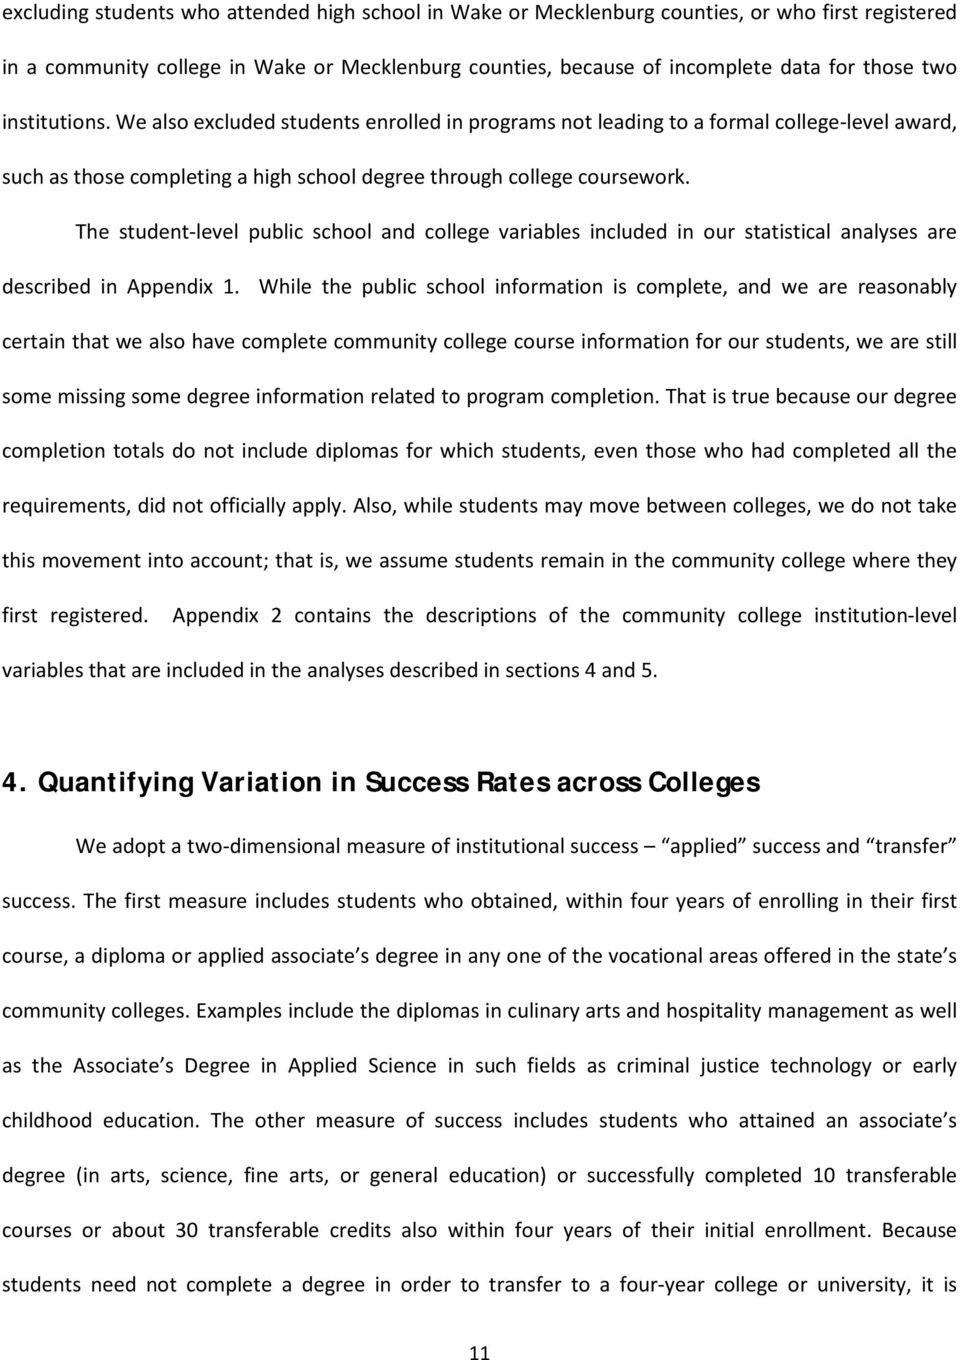 The student-level public school and college variables included in our statistical analyses are described in Appendix 1.